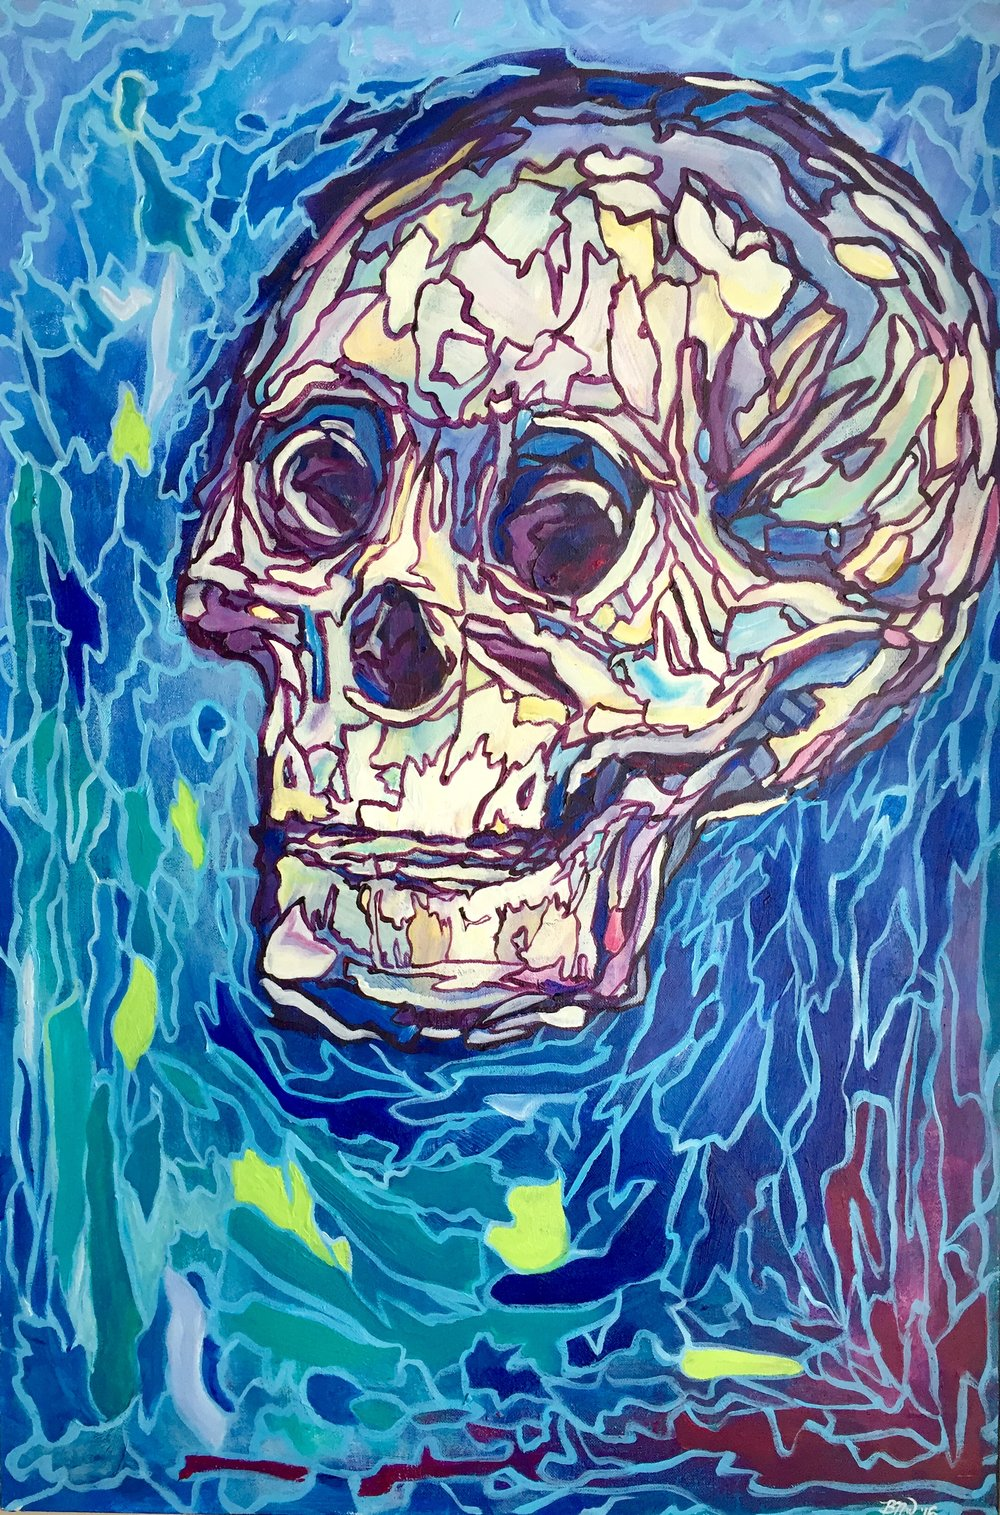 Inner Piece   2016. Acrylic on canvas. 24 x 36.  $800